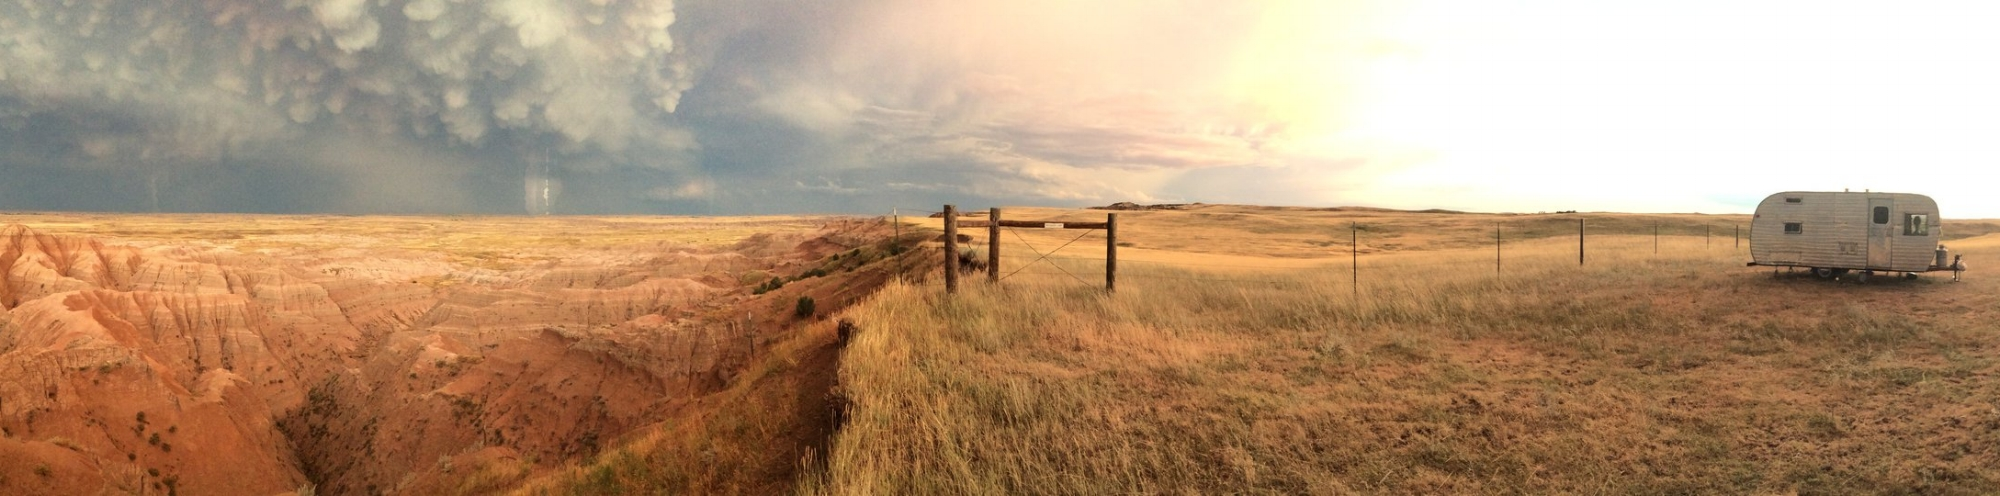 Our camping spot in the Badlands, South Dakota